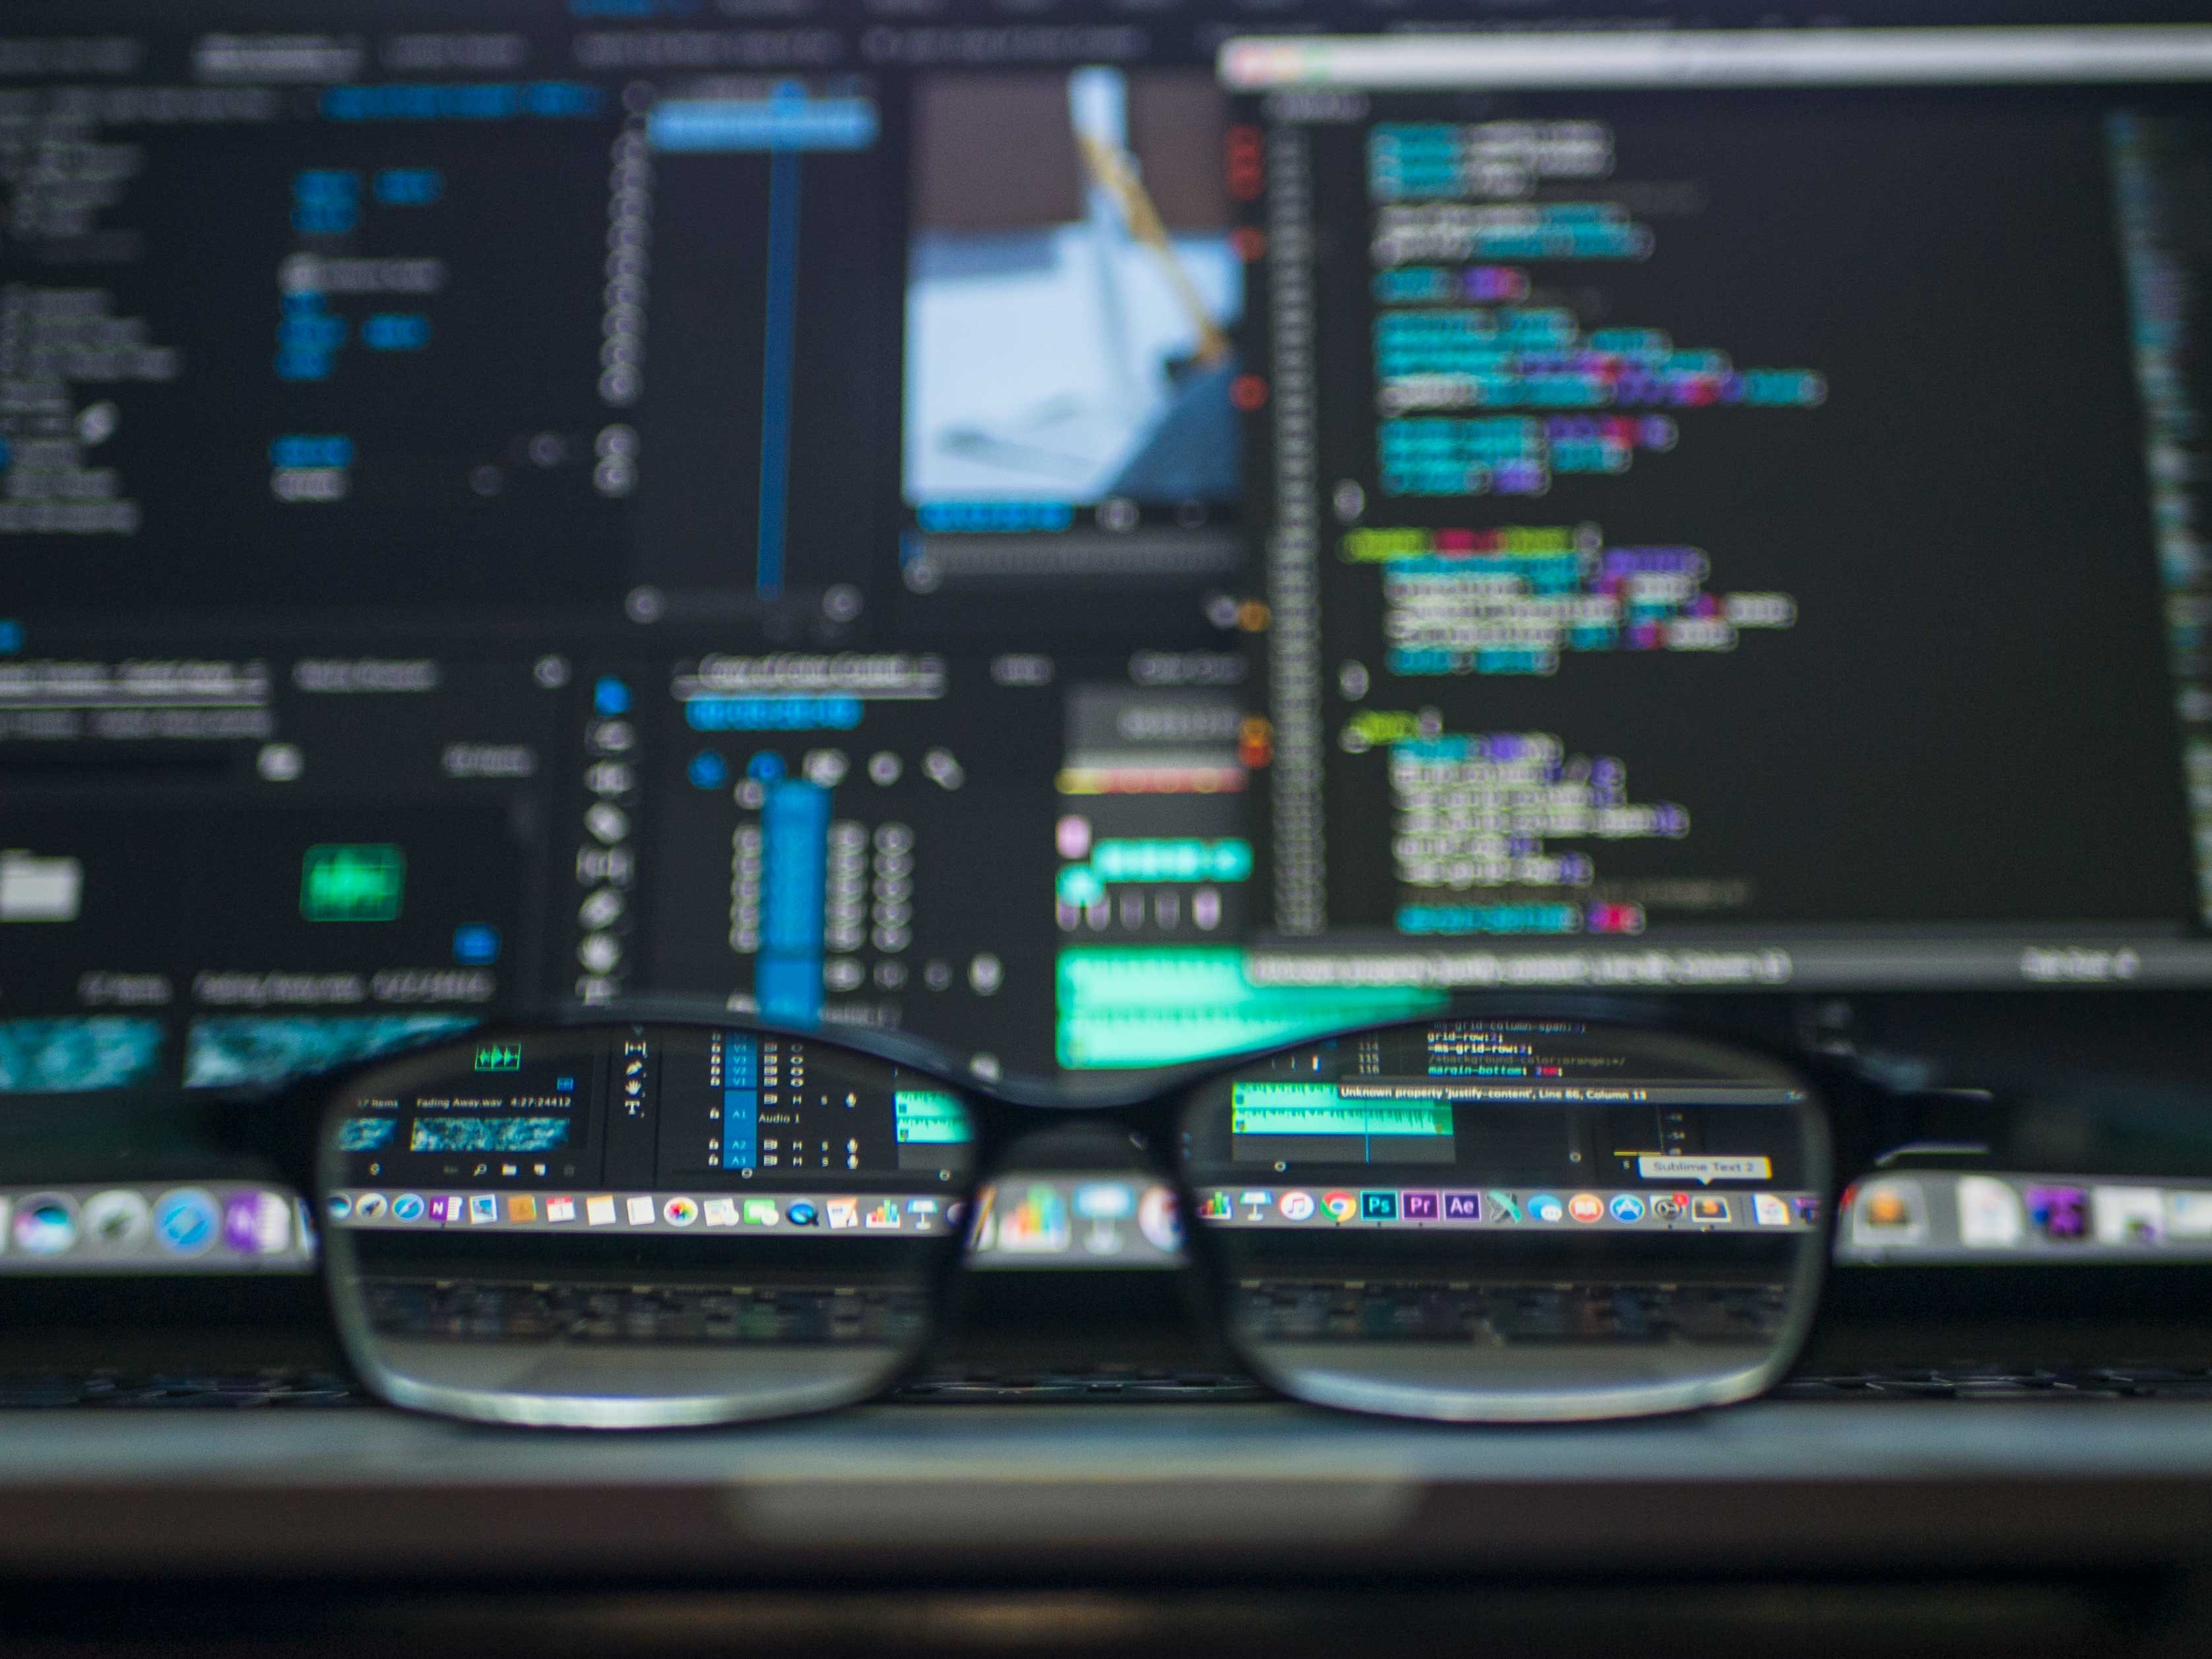 Prescription glasses in front of security source code used for artificial intelligence